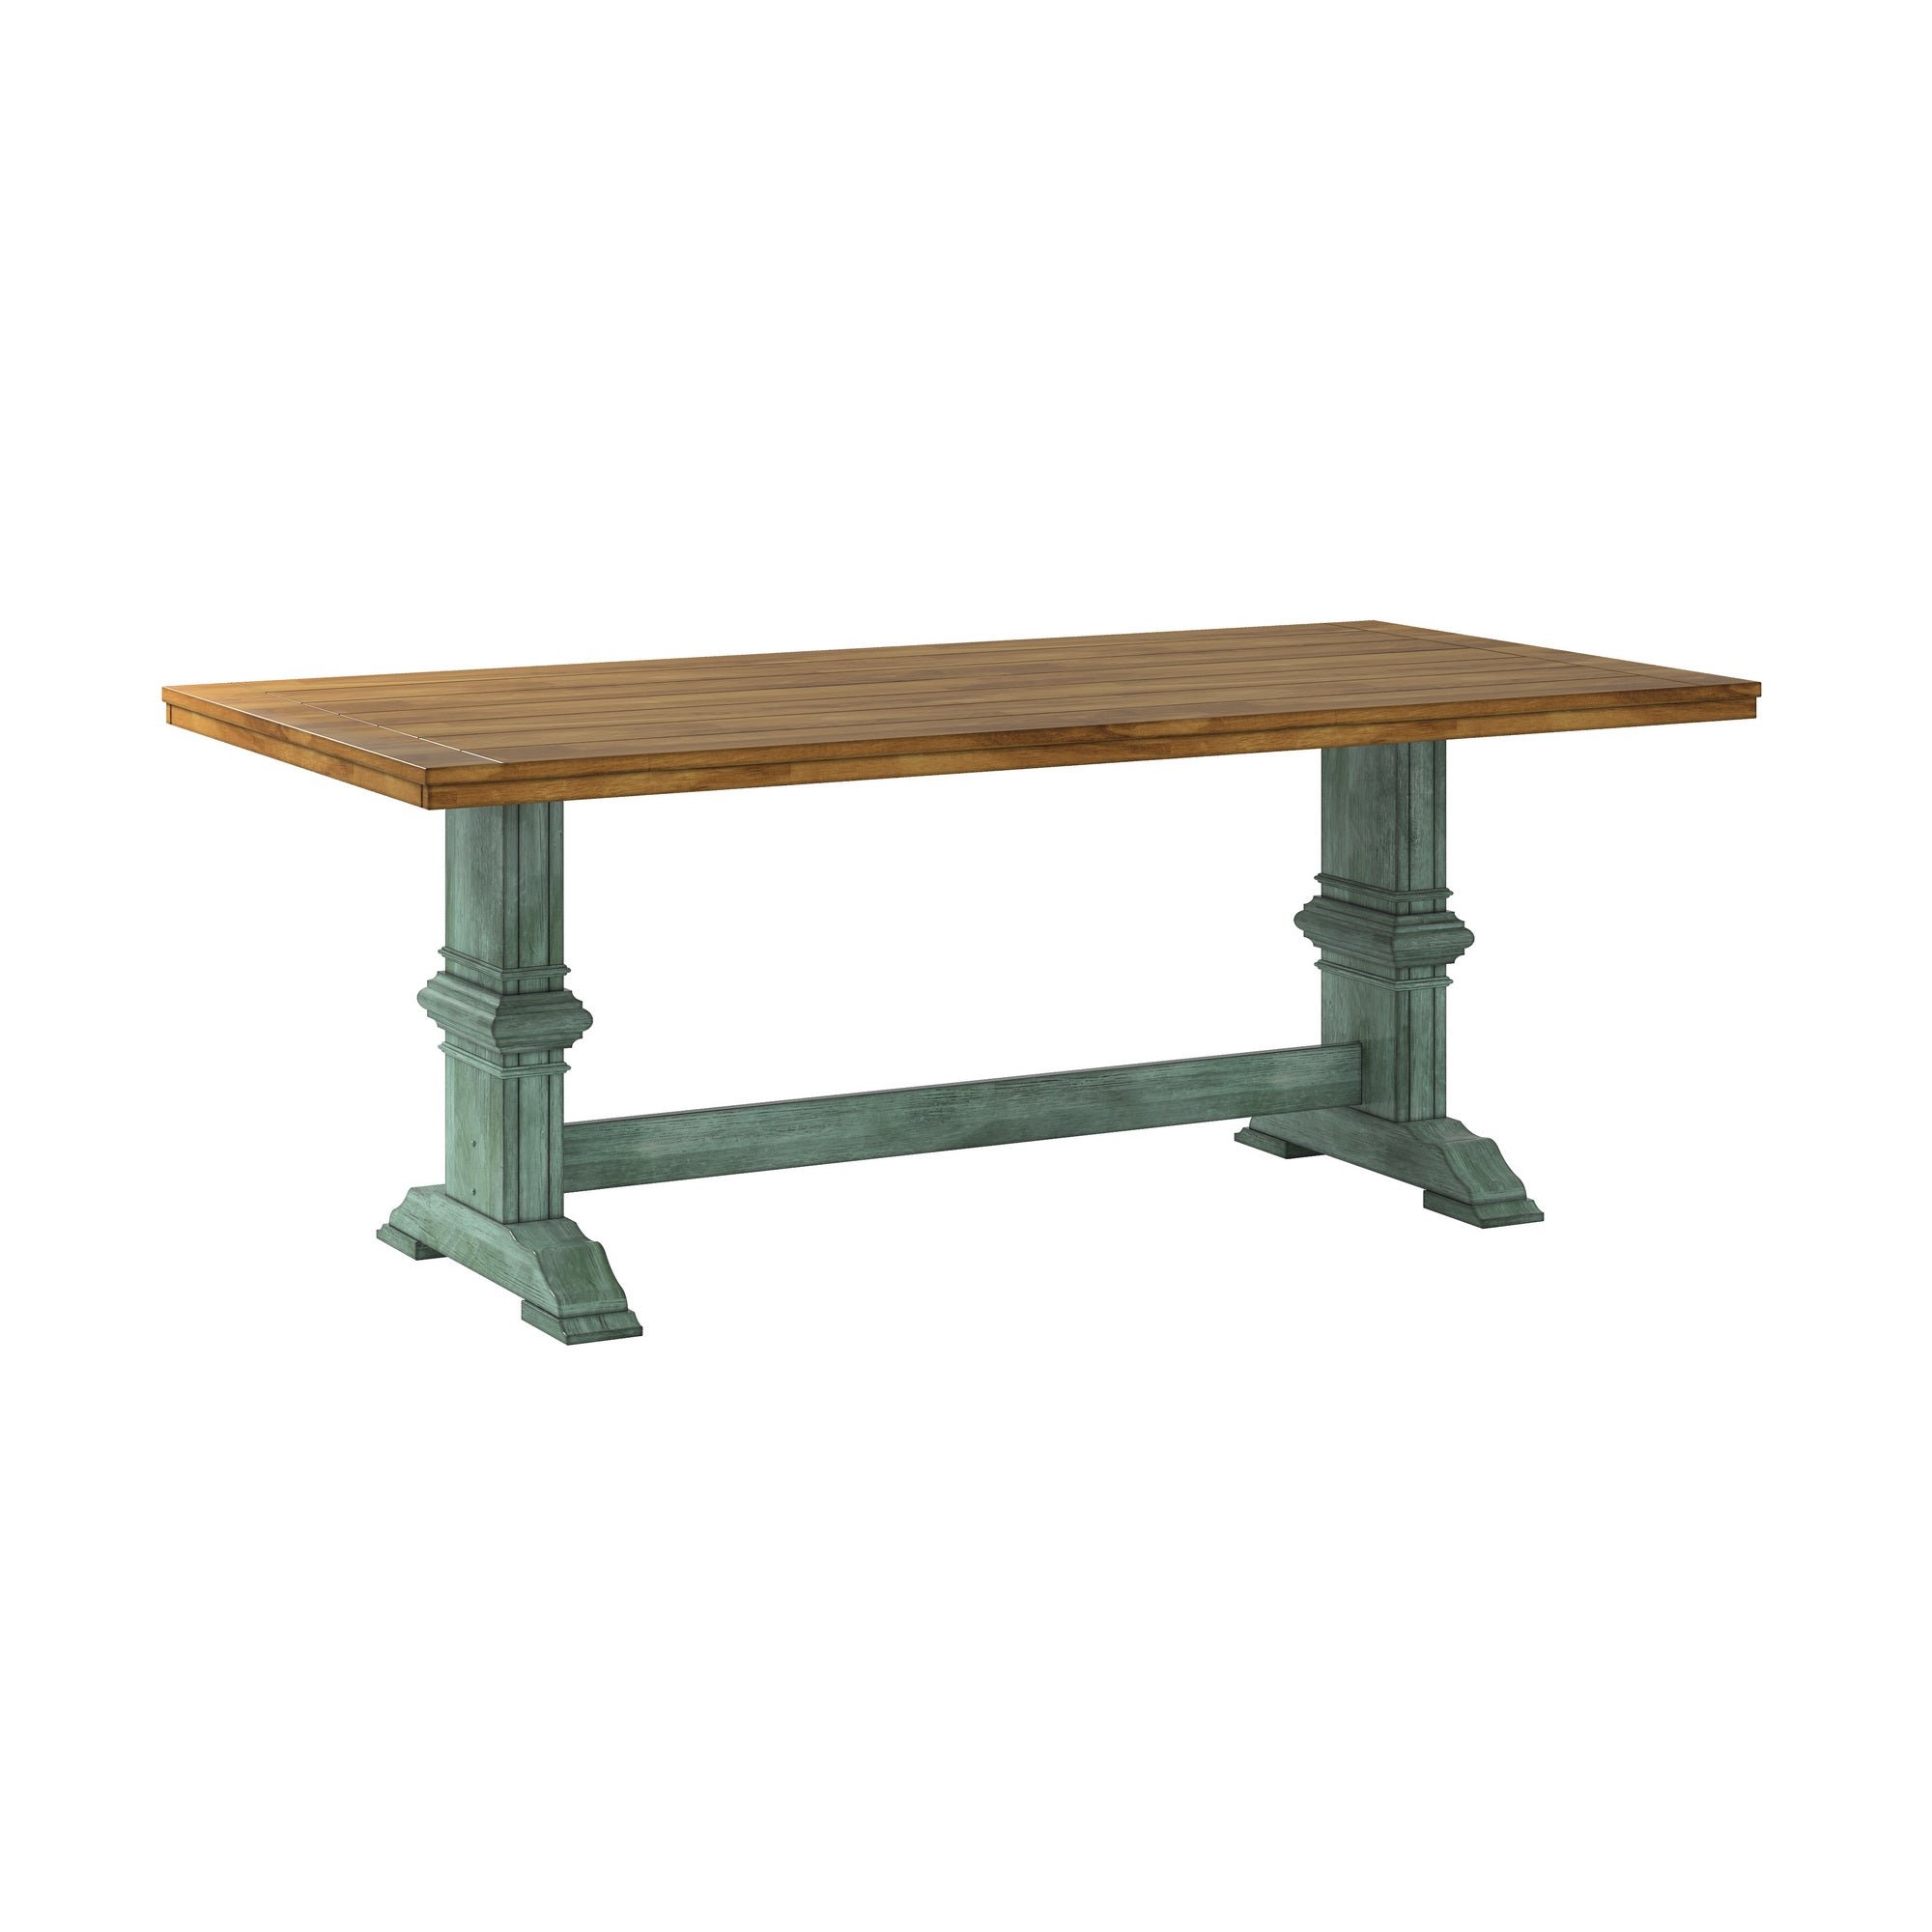 Two-Tone Rectangular Solid Wood Top Dining Table - Oak Top with Antique Sage Green Base